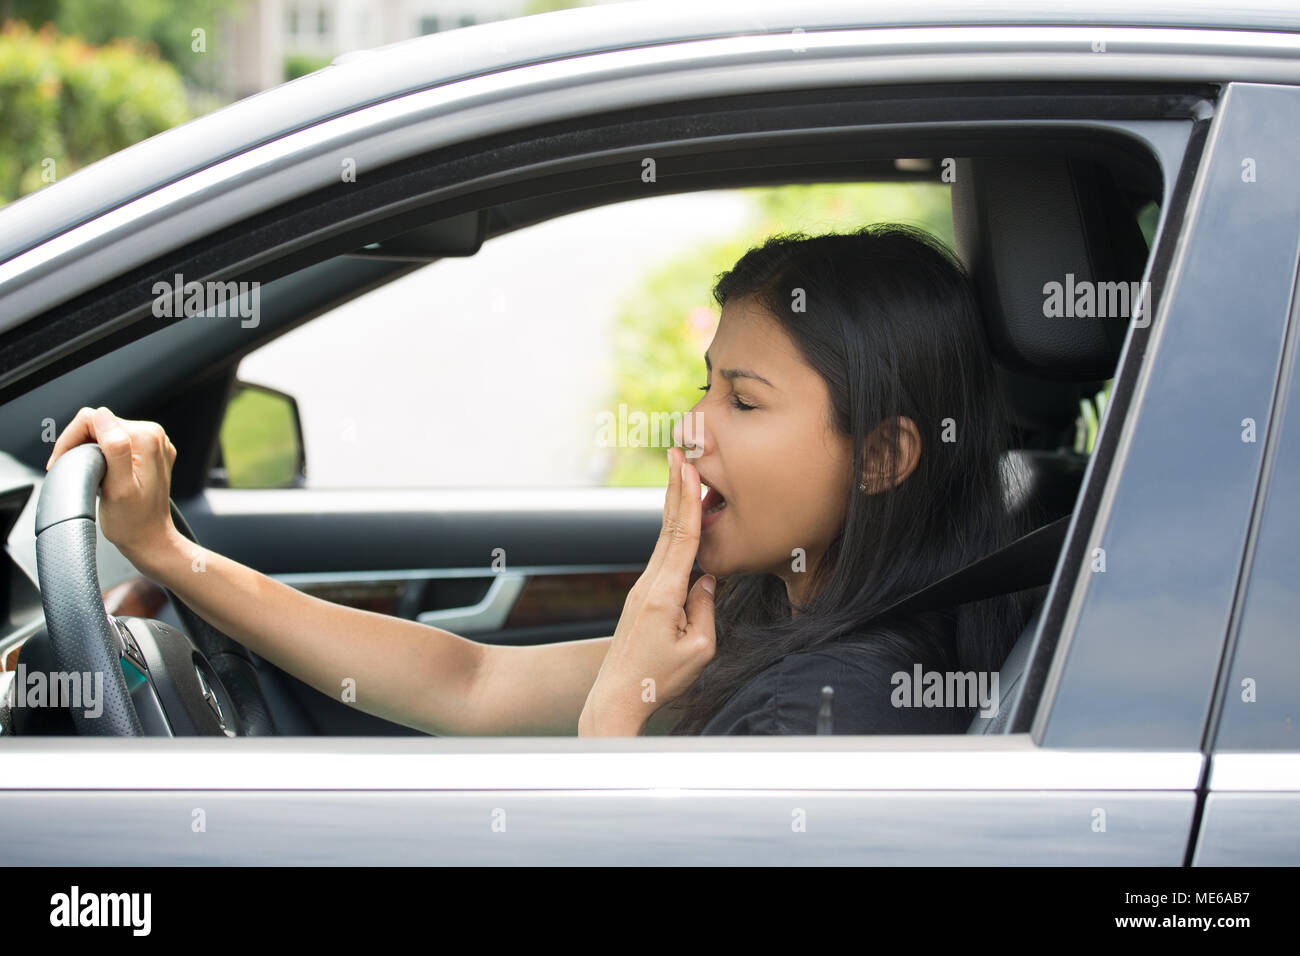 Closeup portrait tired young attractive woman with short attention span, driving her car after long hours trip, yawning at wheel, isolated outside bac - Stock Image